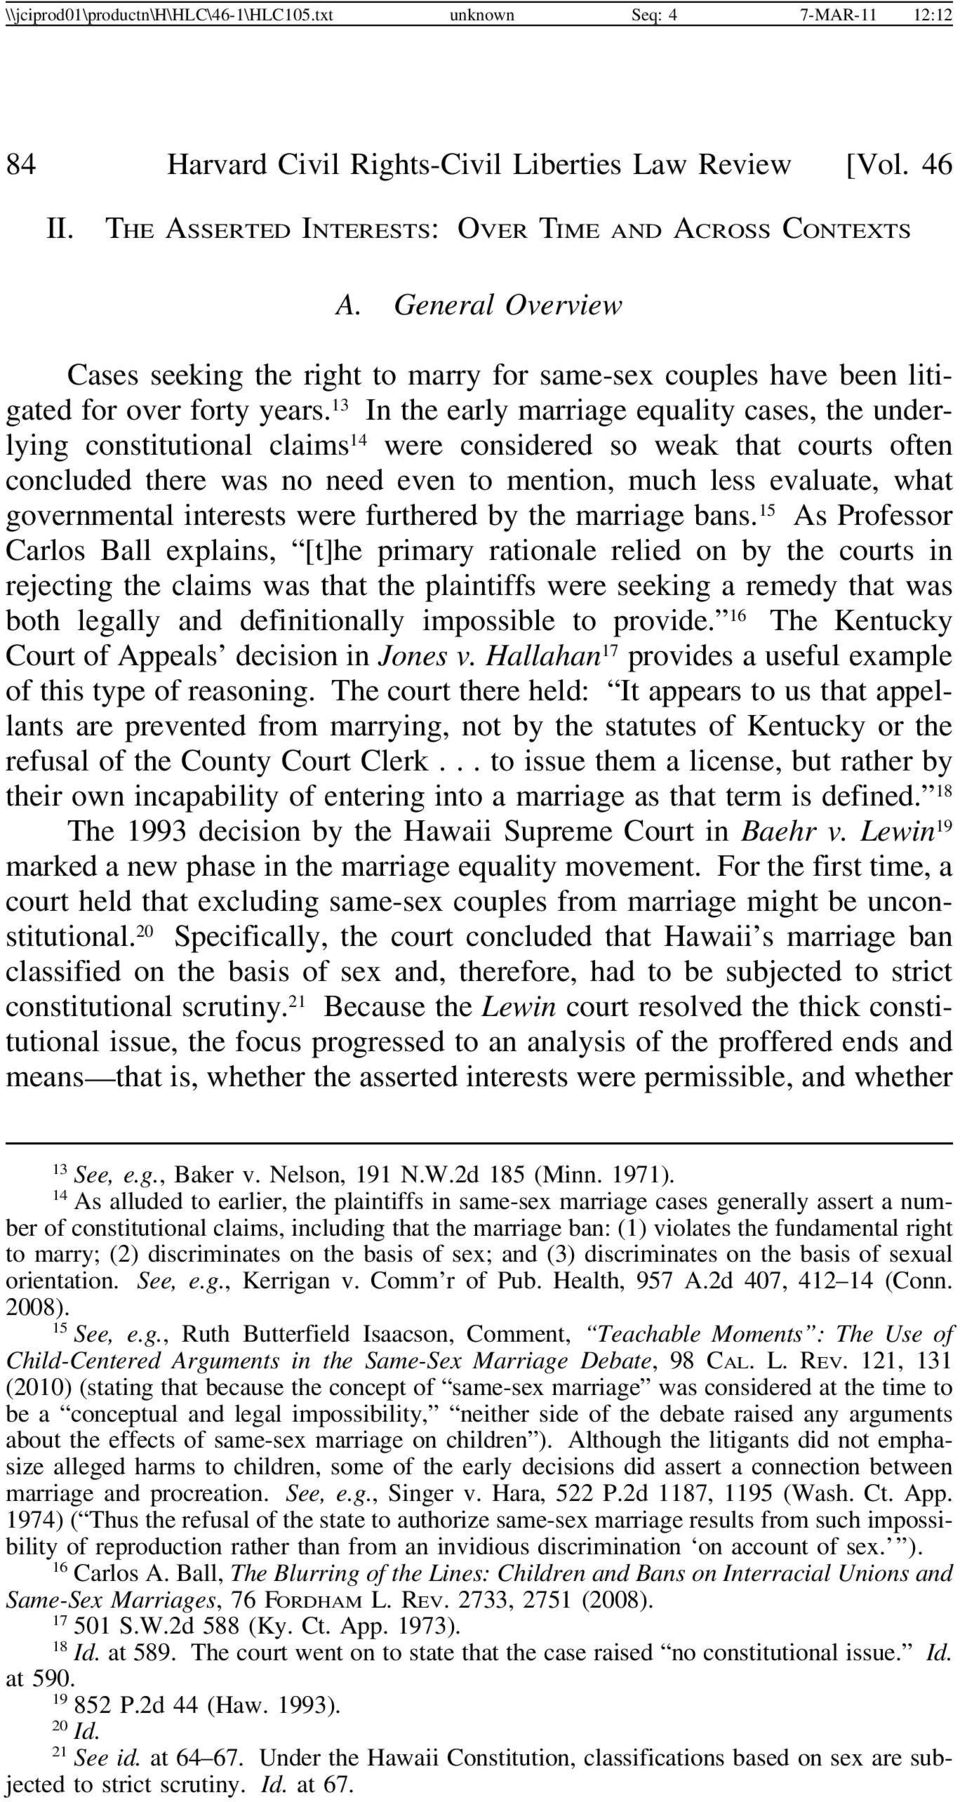 13 In the early marriage equality cases, the underlying constitutional claims 14 were considered so weak that courts often concluded there was no need even to mention, much less evaluate, what